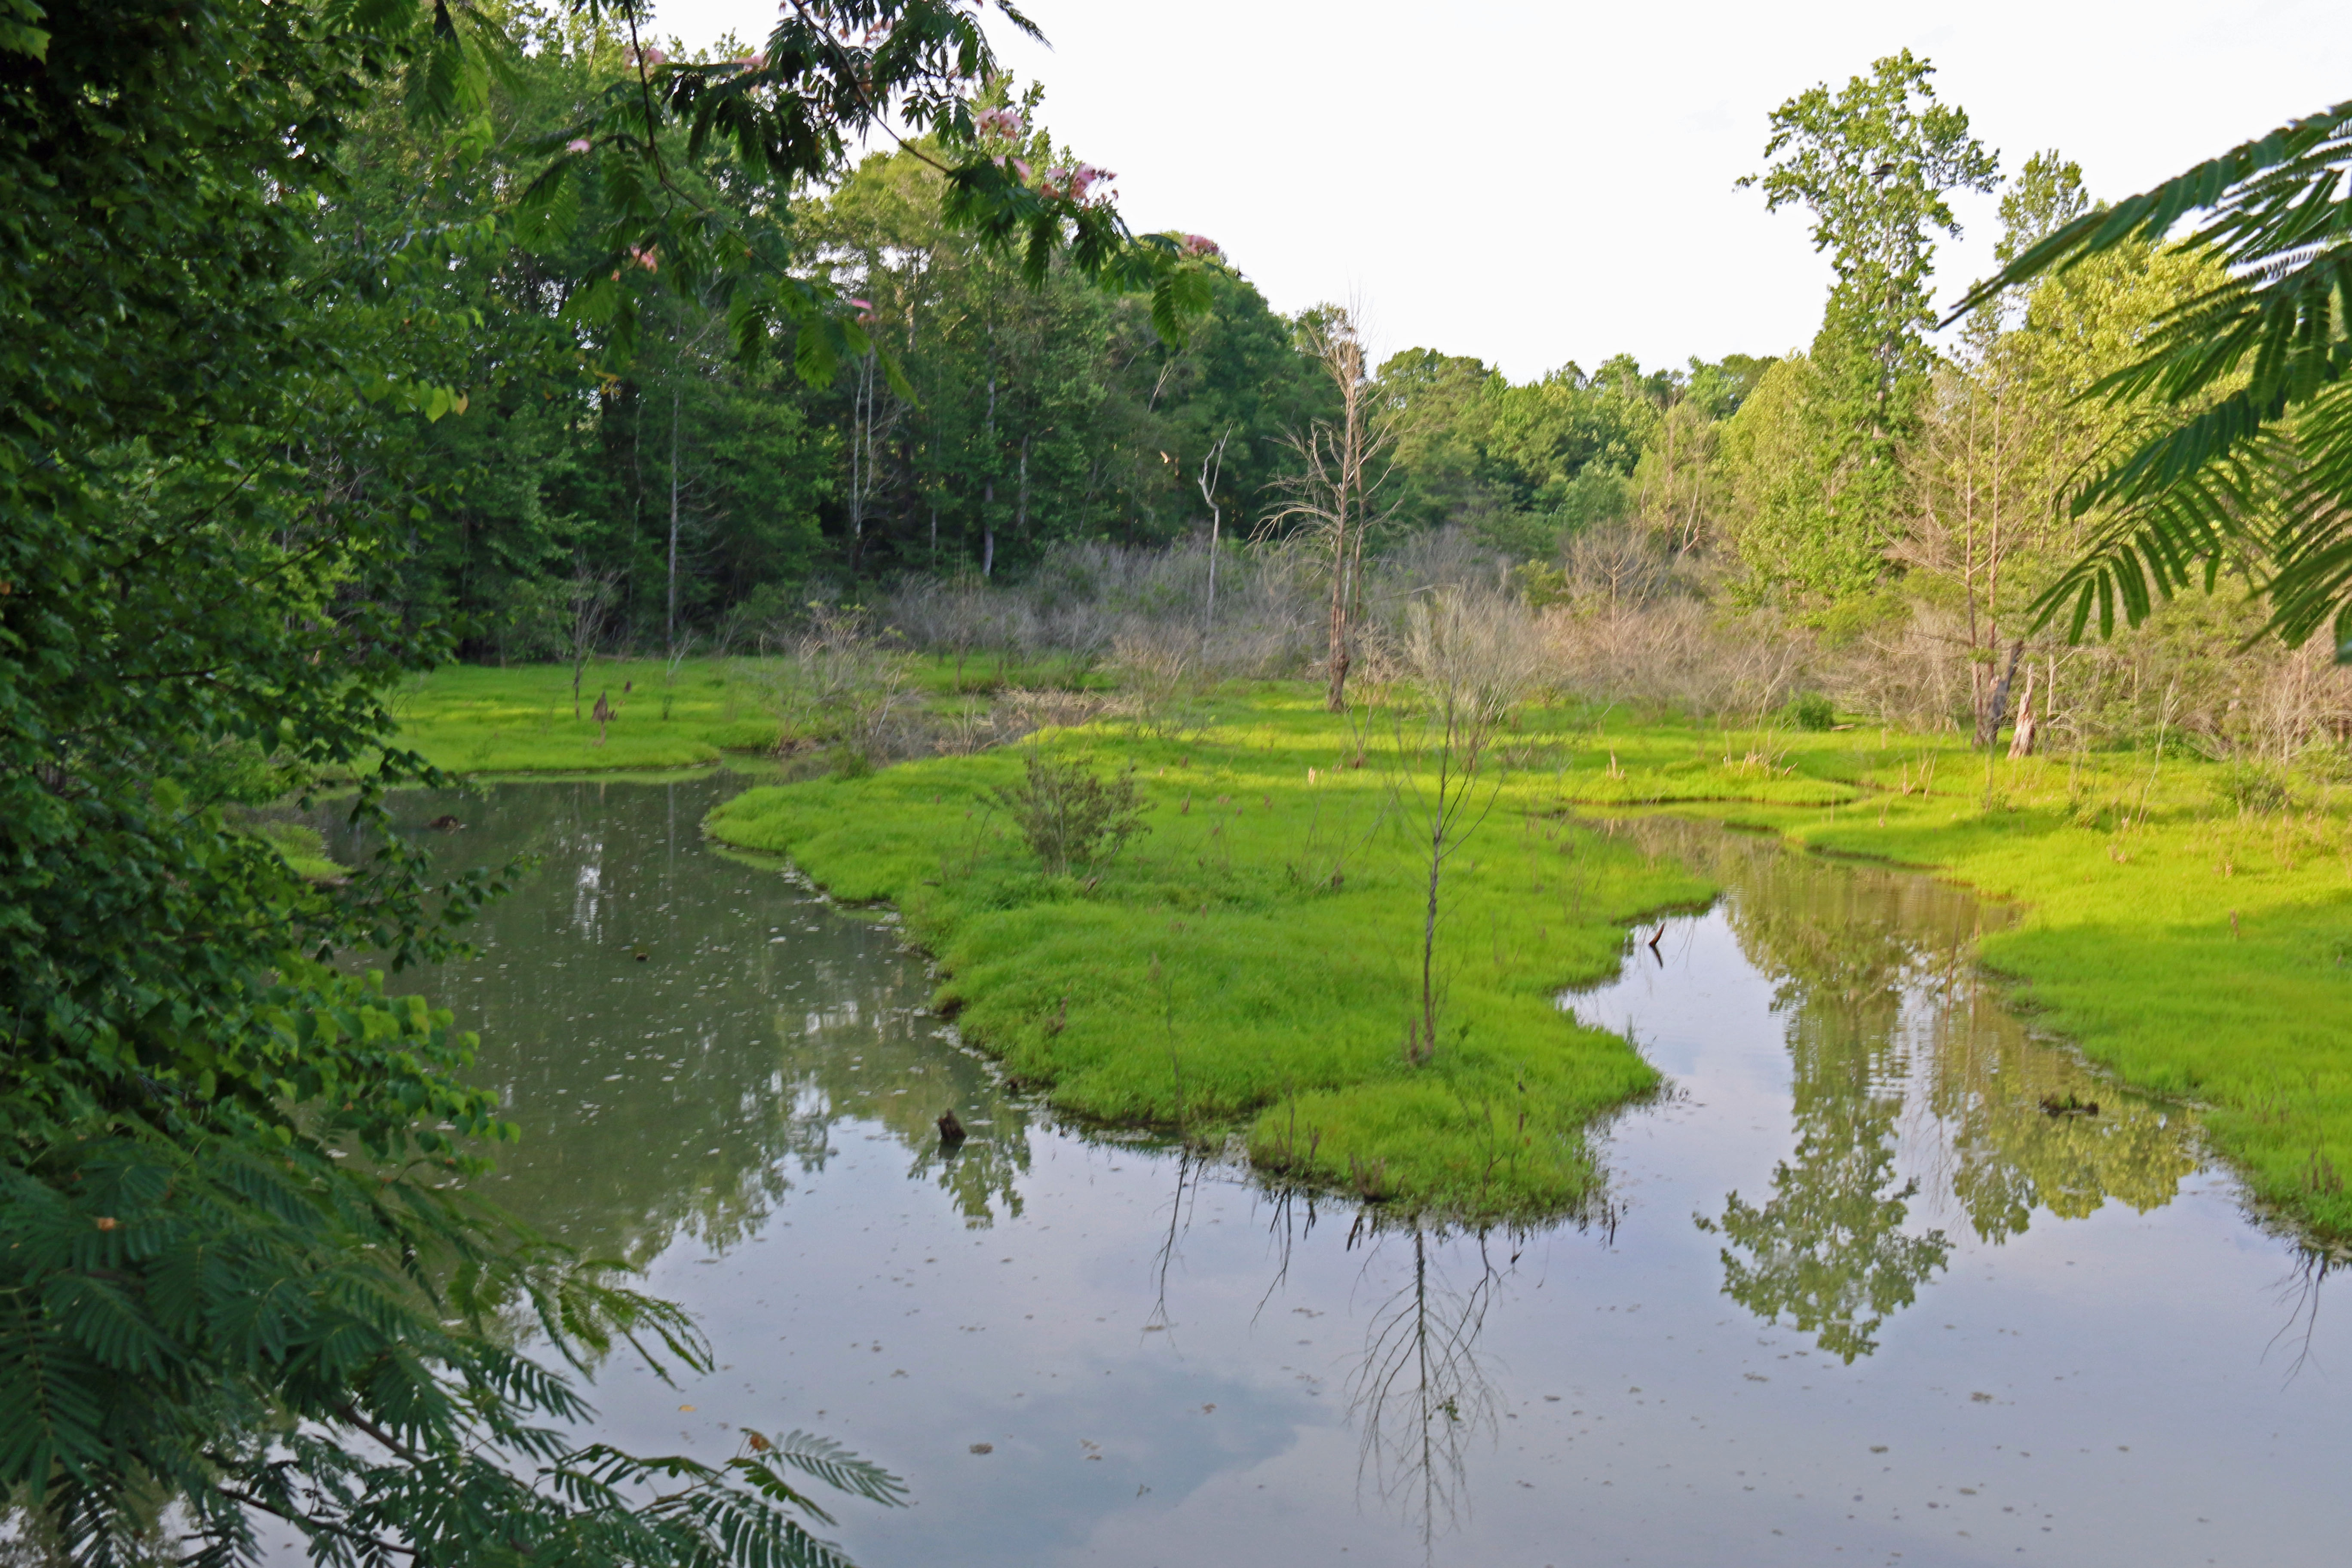 wetland creation creating duck hunting habitat with moist-soil